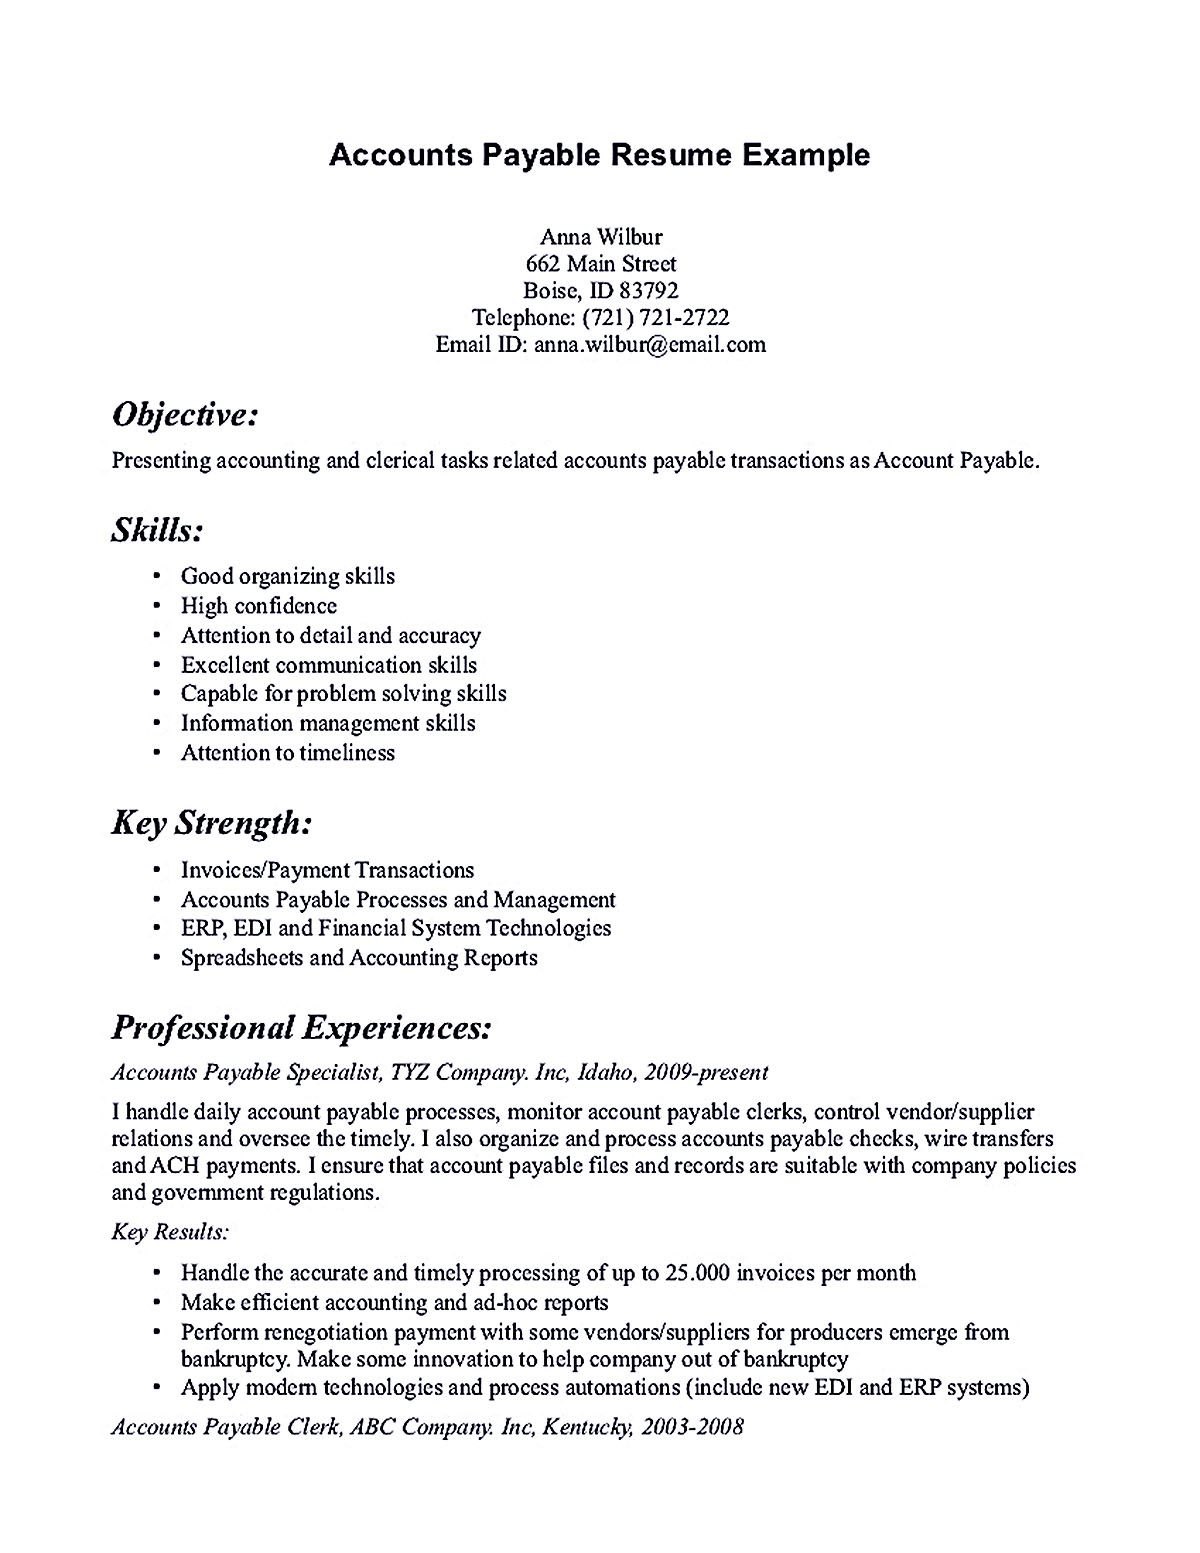 Account Receivable Resume Account Payable Resume Display Your Skills As Account Payable